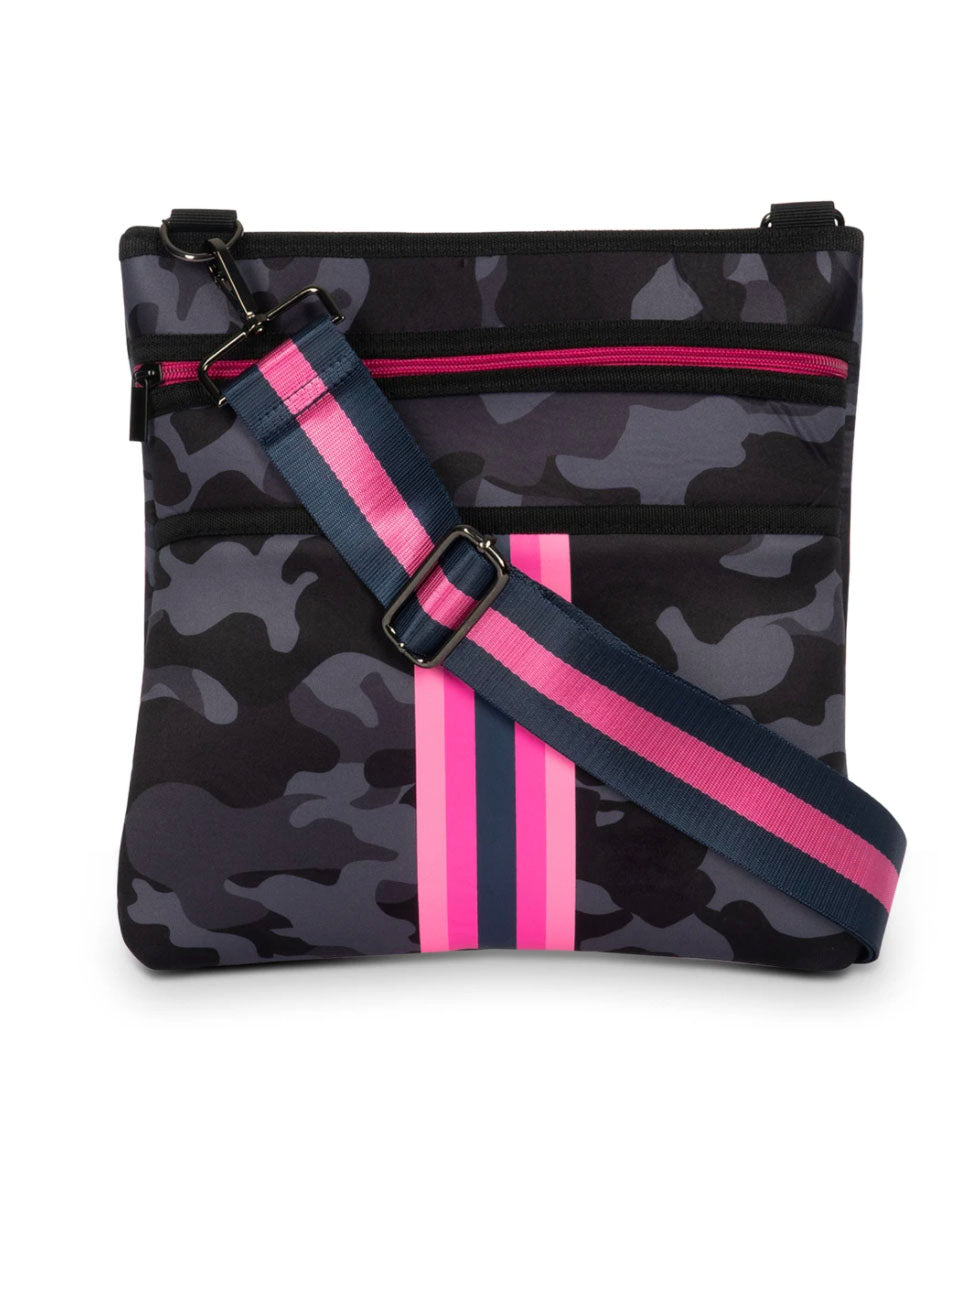 Haute Shore Peyton Epic Crossbody in Grey Camo with Pink Stripes